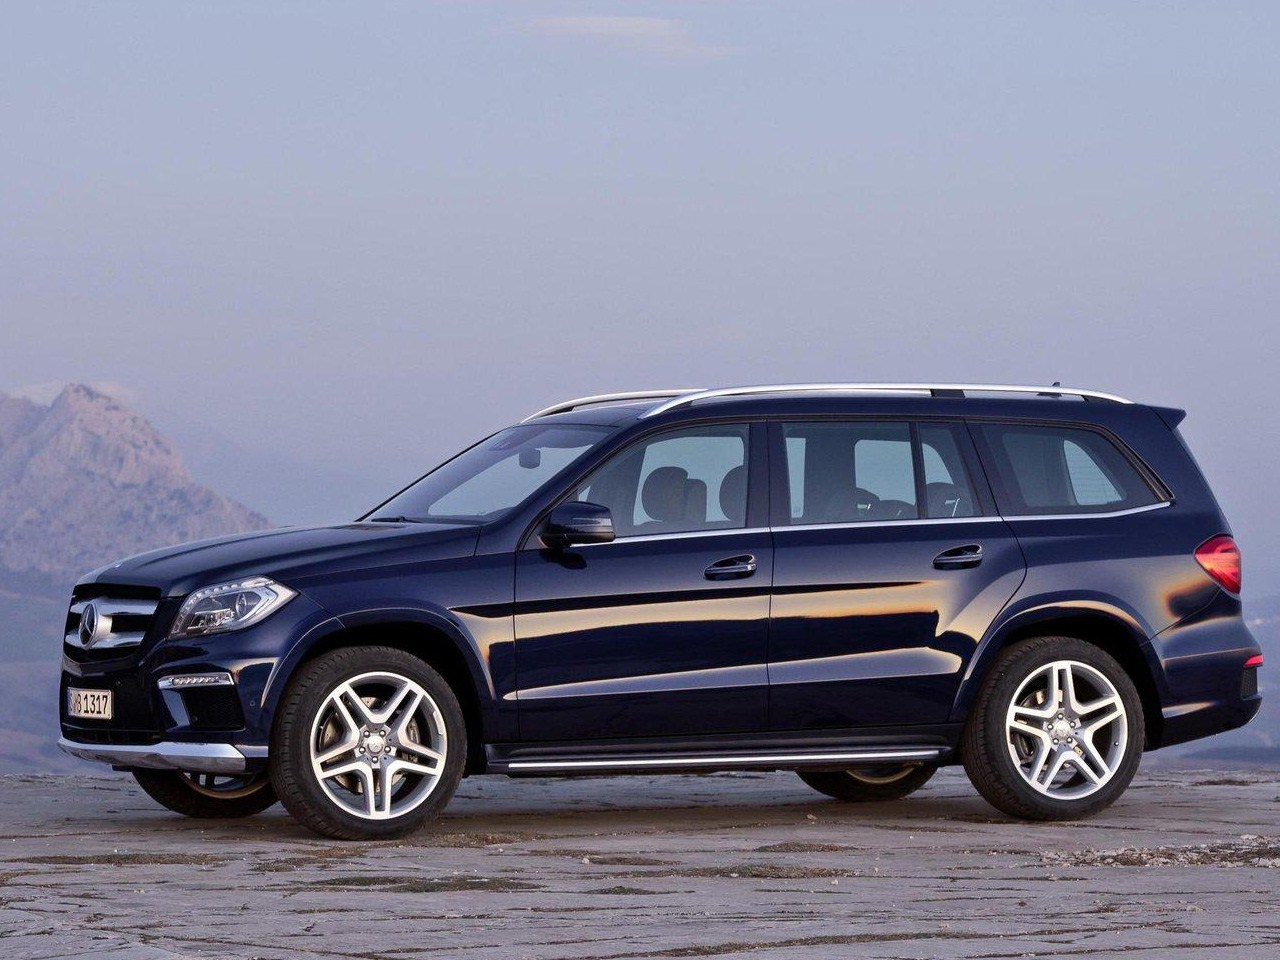 ... Big Size Images, HD Wallpaper For YOu Download Mercedes Benz ML Class  Photos Online Car Wallpaper No. 4044 For Free PC, Tablet, IPhone, IPad Etc  Device